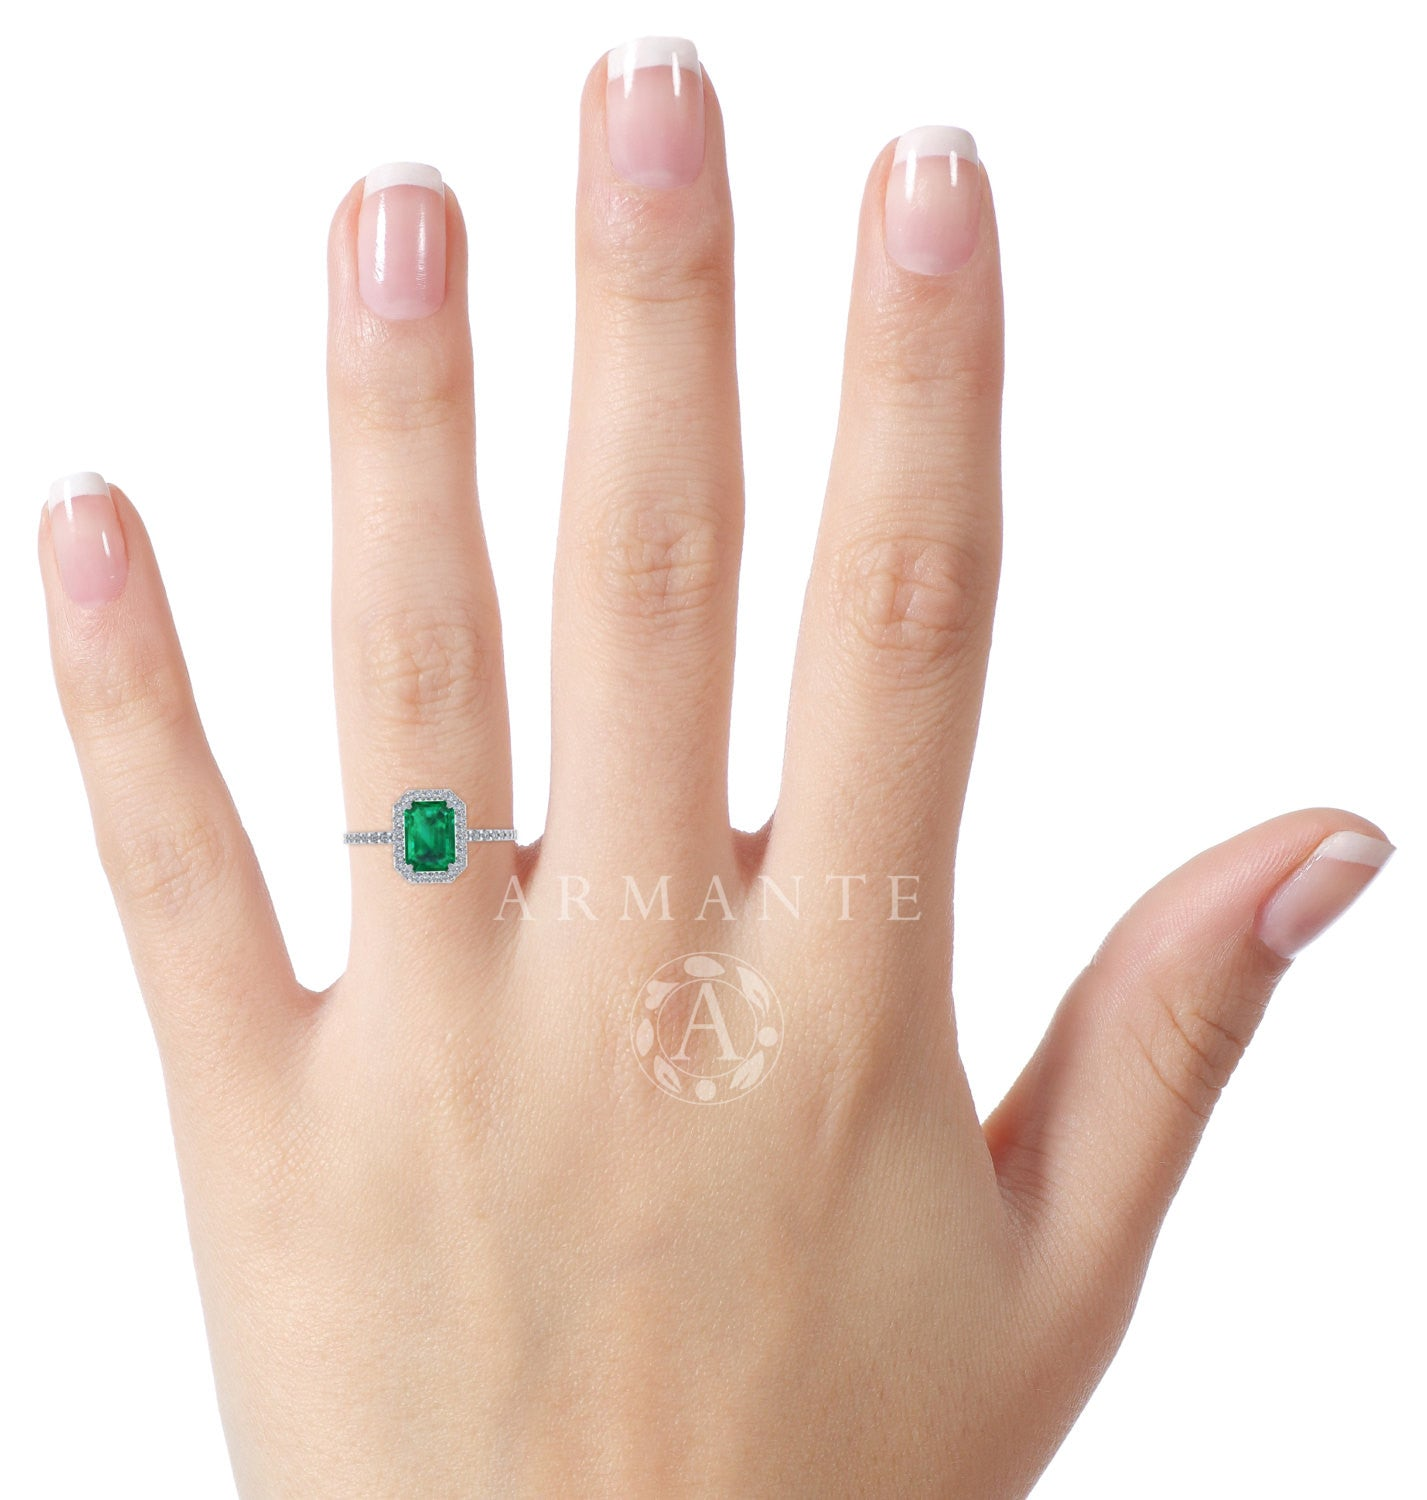 lab rings aliexpress engagement and com on jewelry free emerald get ring w anniversary shipping wholesale leige green grown women created buy cut for square gemstone